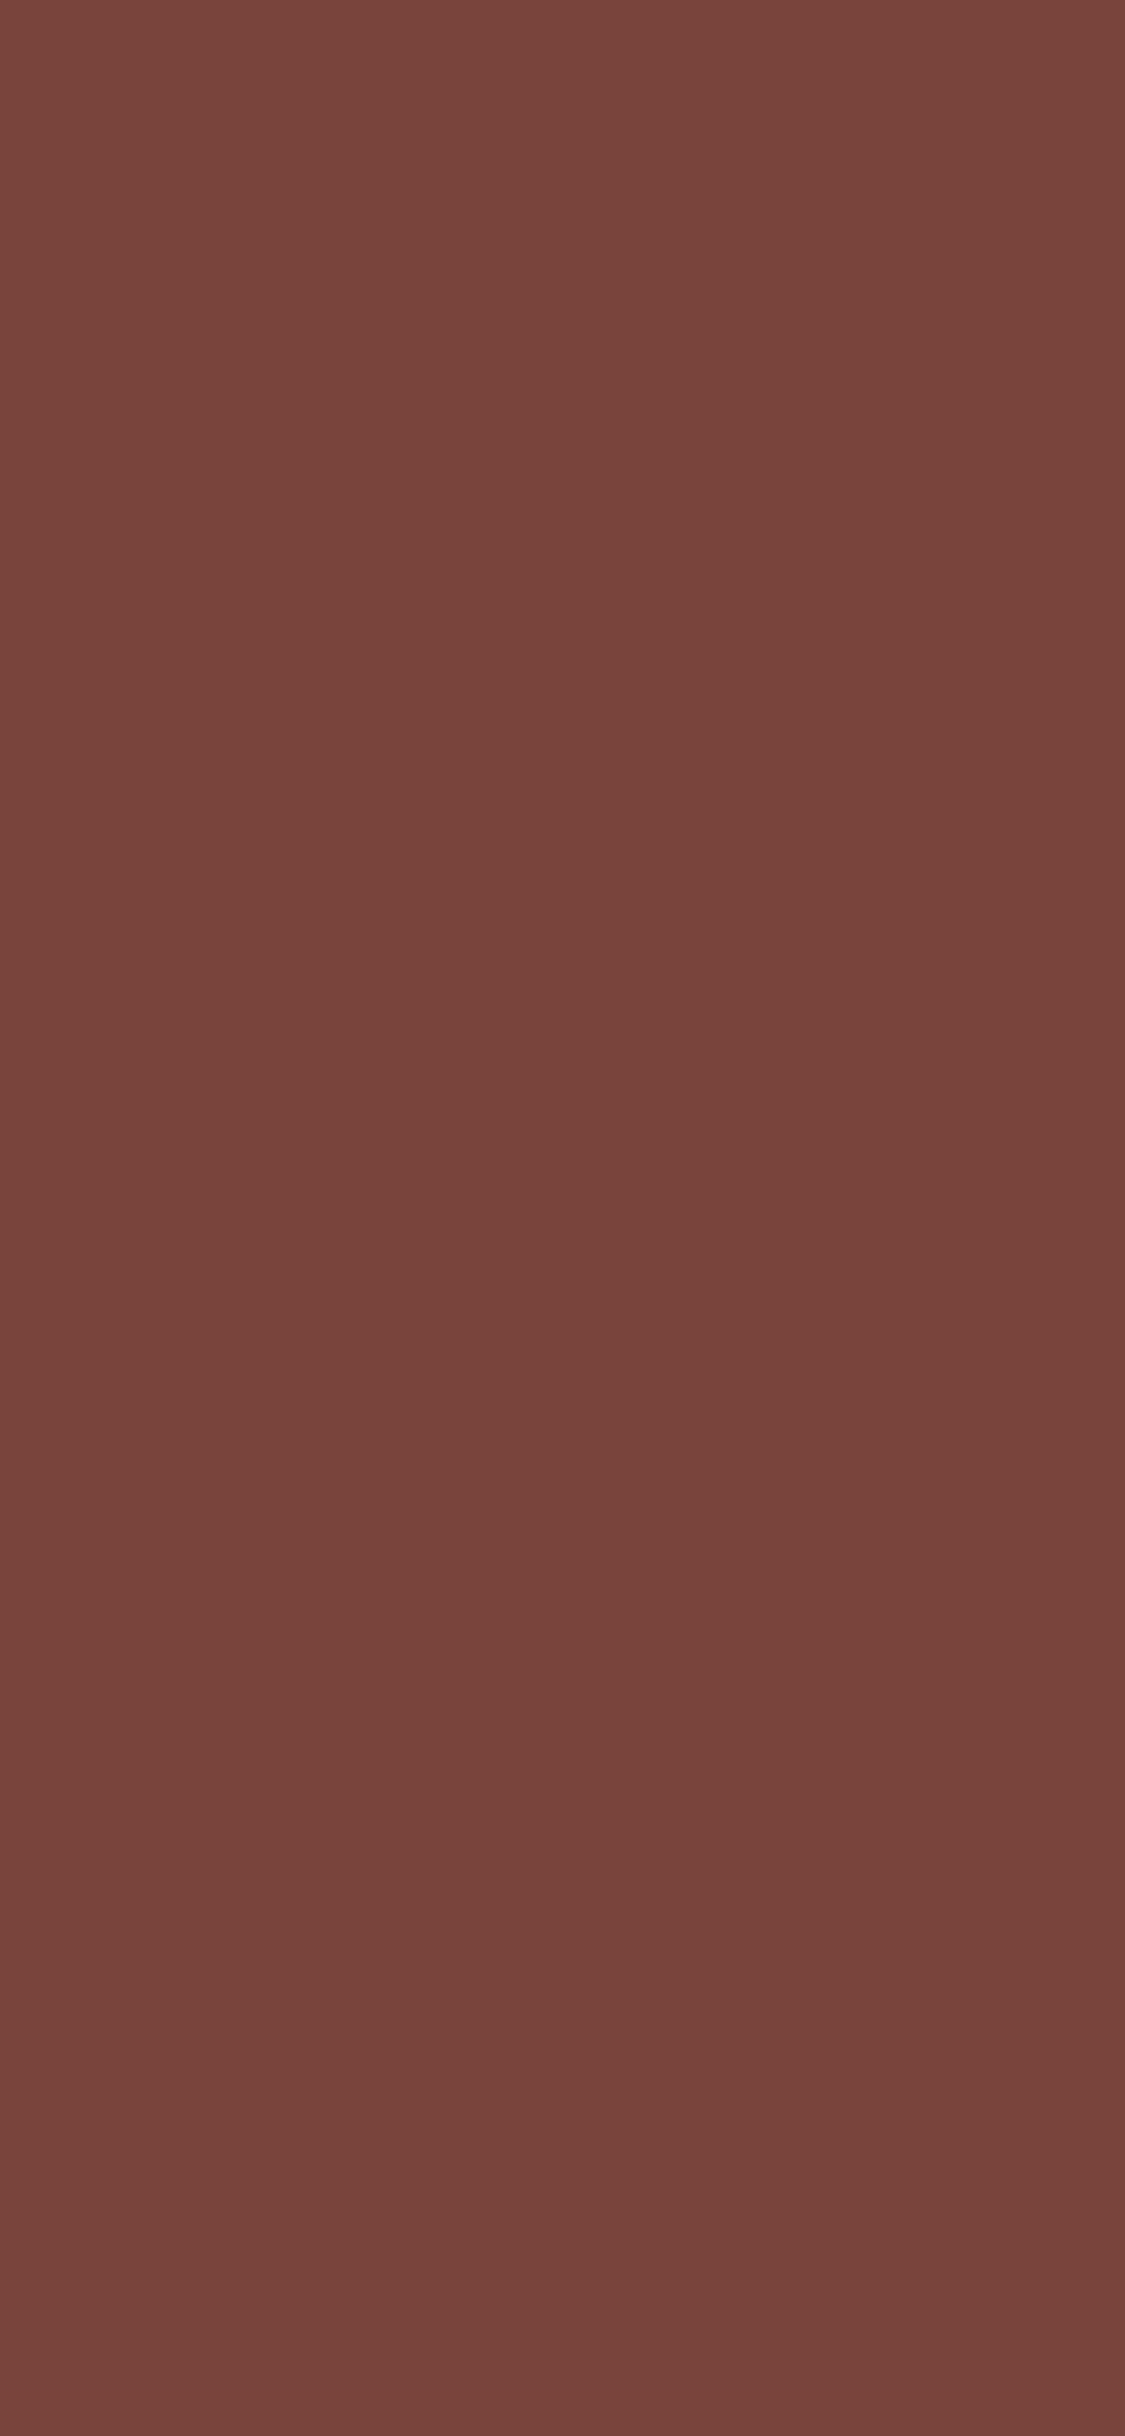 1125x2436 Medium Tuscan Red Solid Color Background